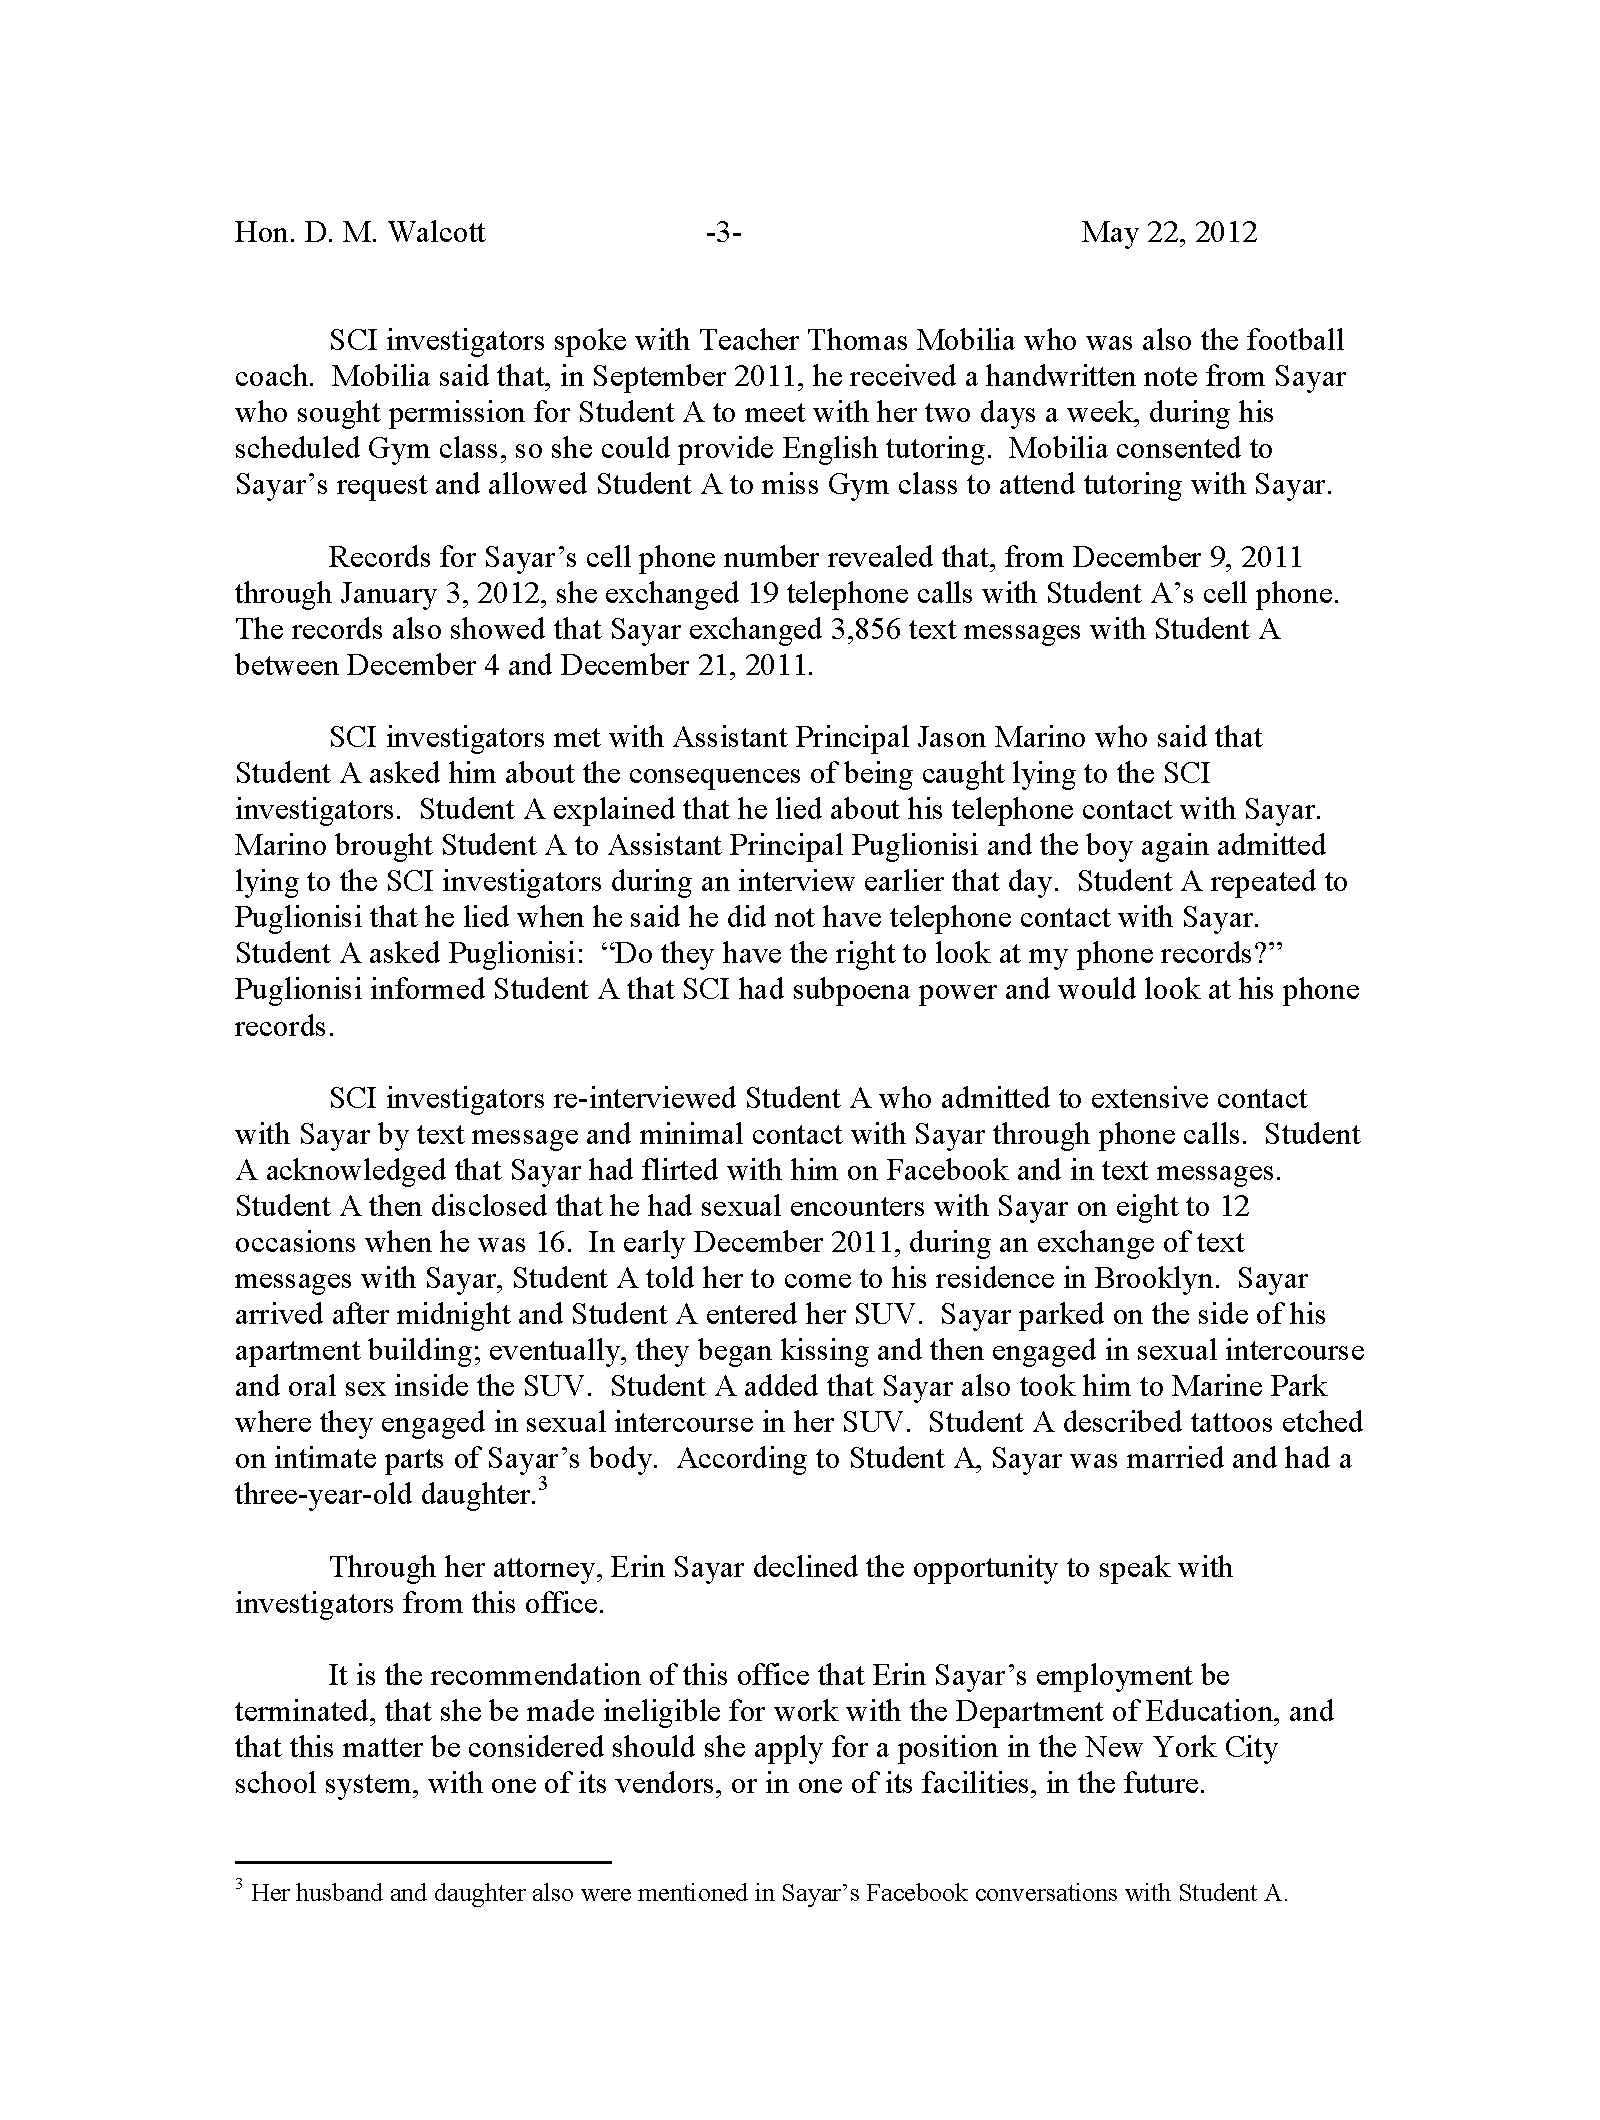 Copy of sayar erin investigative letter3.png